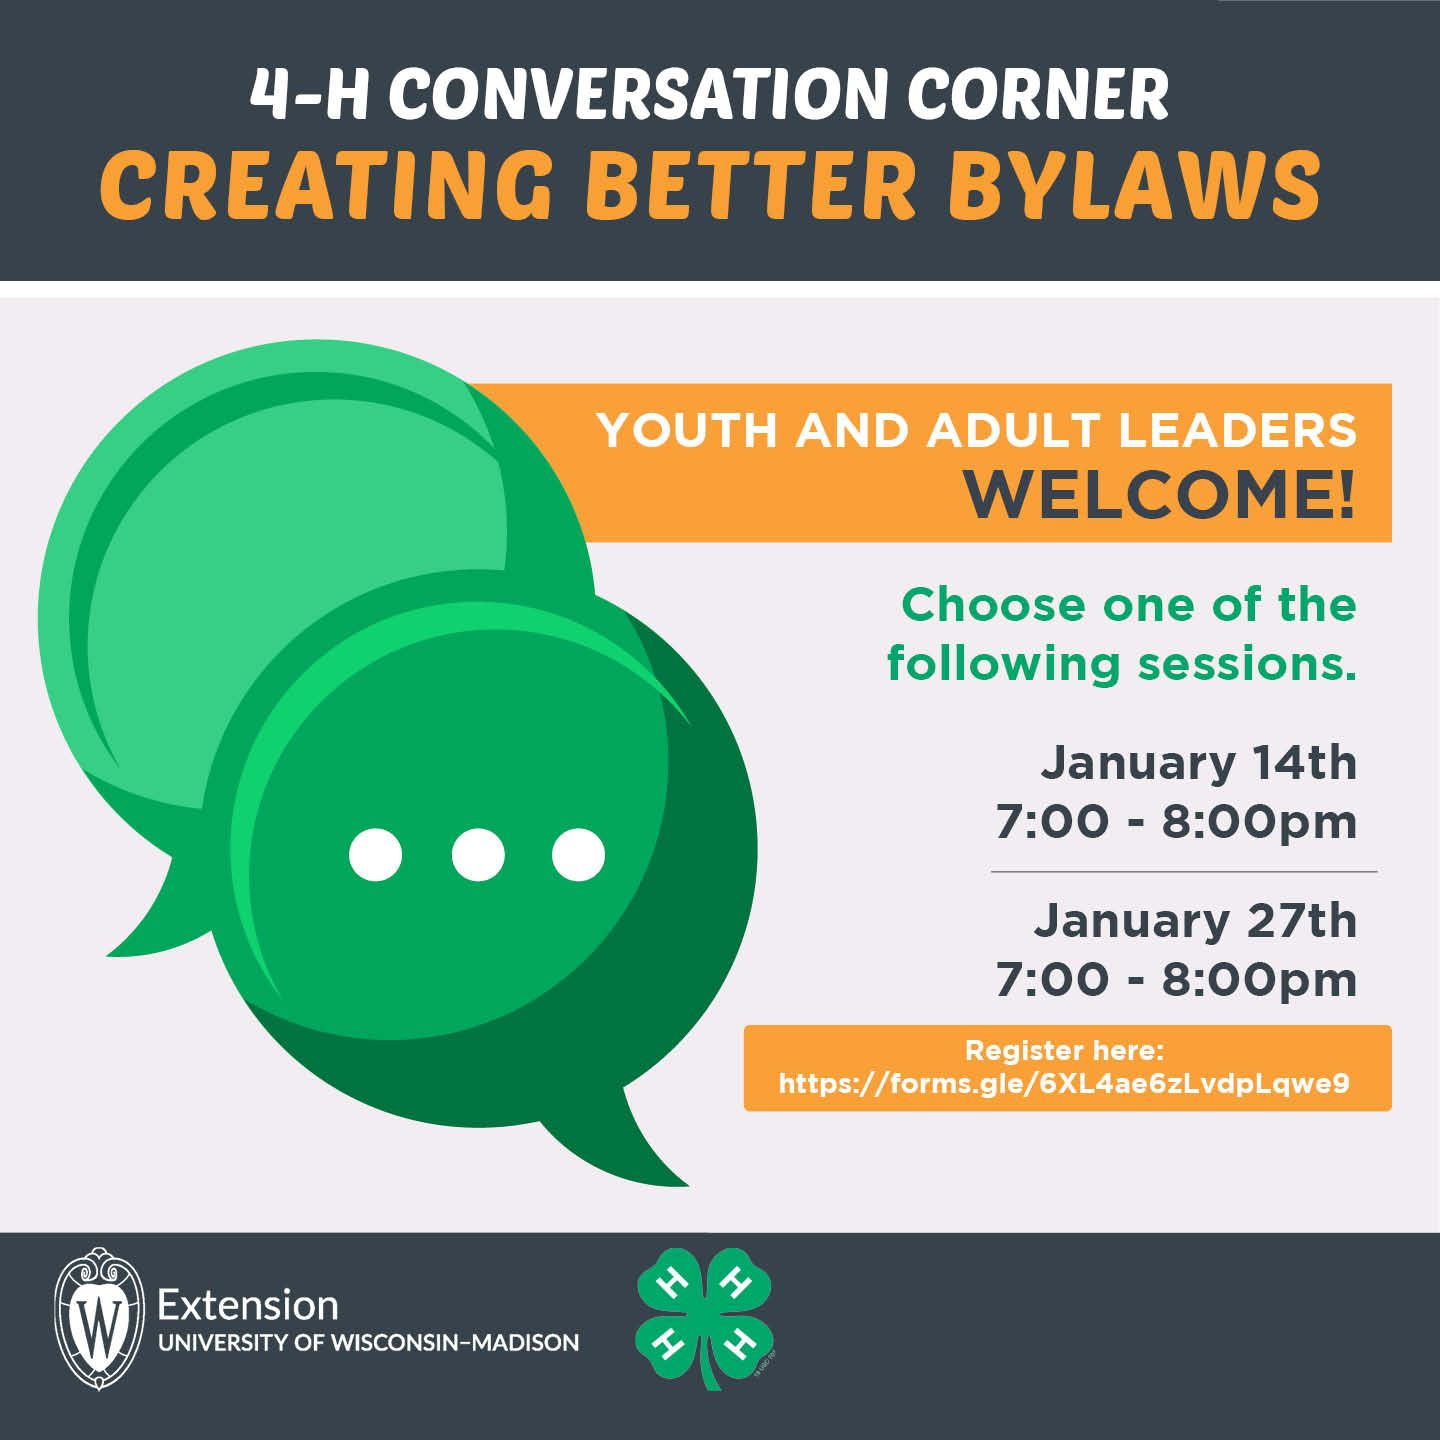 4-H Conversation Corner: Creating better bylaws. Youth and Ault Leaders Welcome! Choose one of the following sessions: Jan 14 or Jan 27, 7-8pm. Register: https://forms.gle/6XL4ae6zLvdpLqwe9